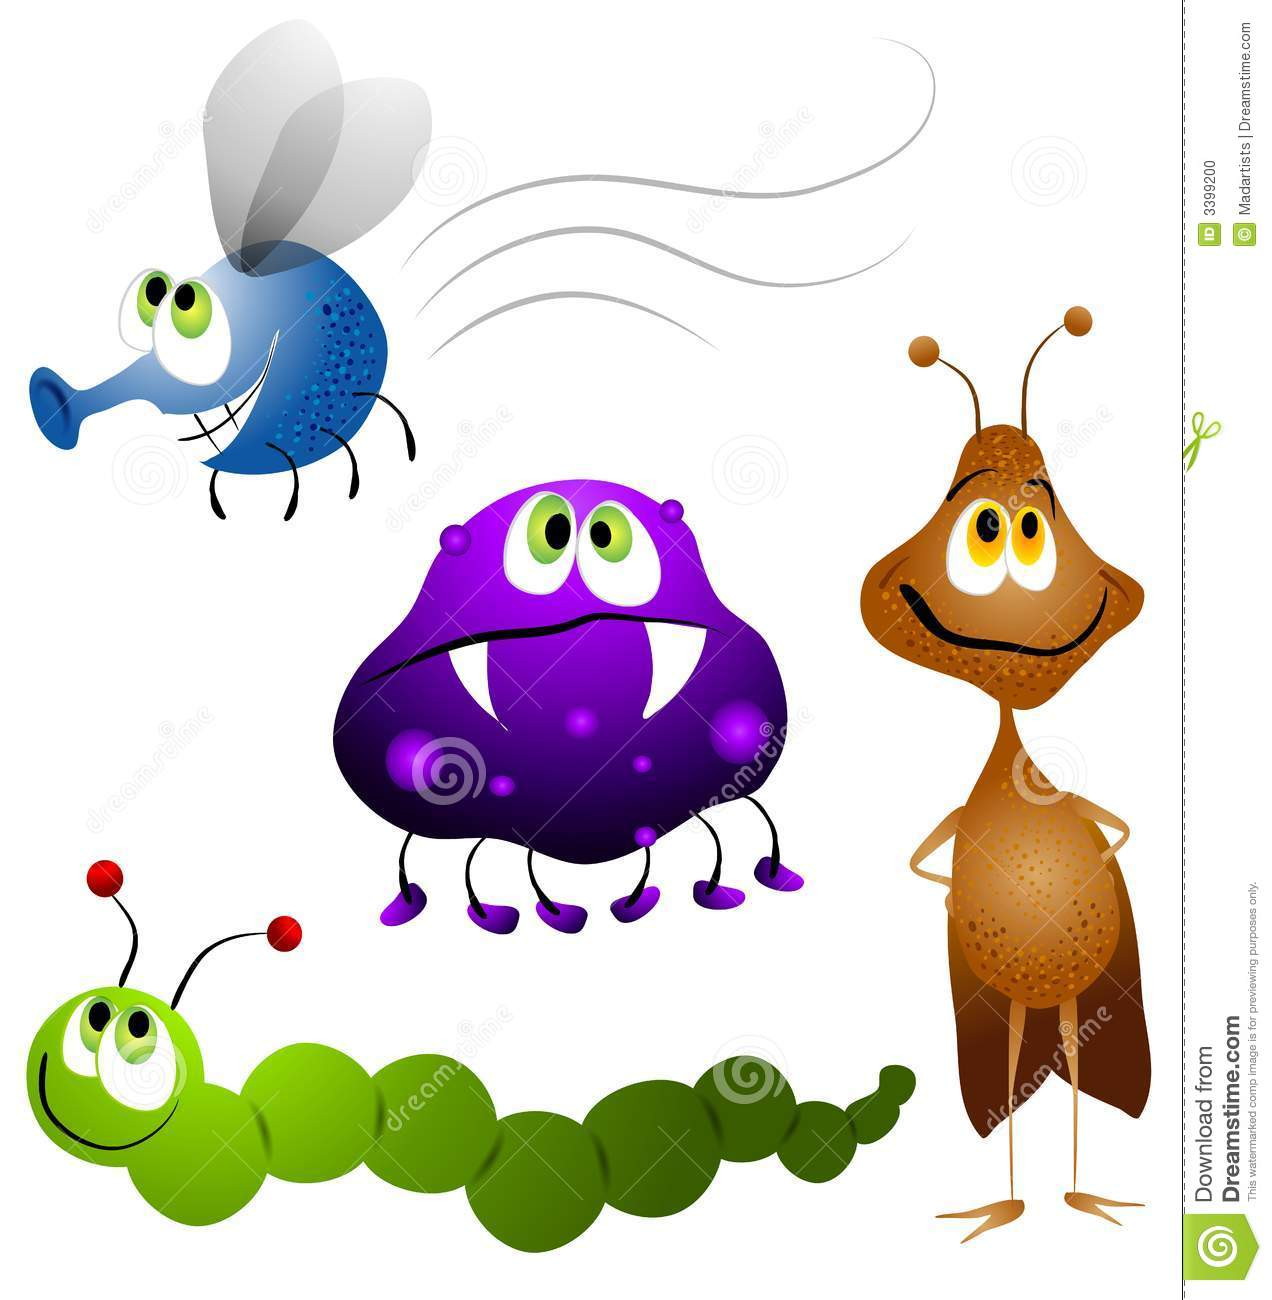 ugly cartoon bugs insects stock illustration illustration of rh dreamstime com insect clipart free insect clipart free